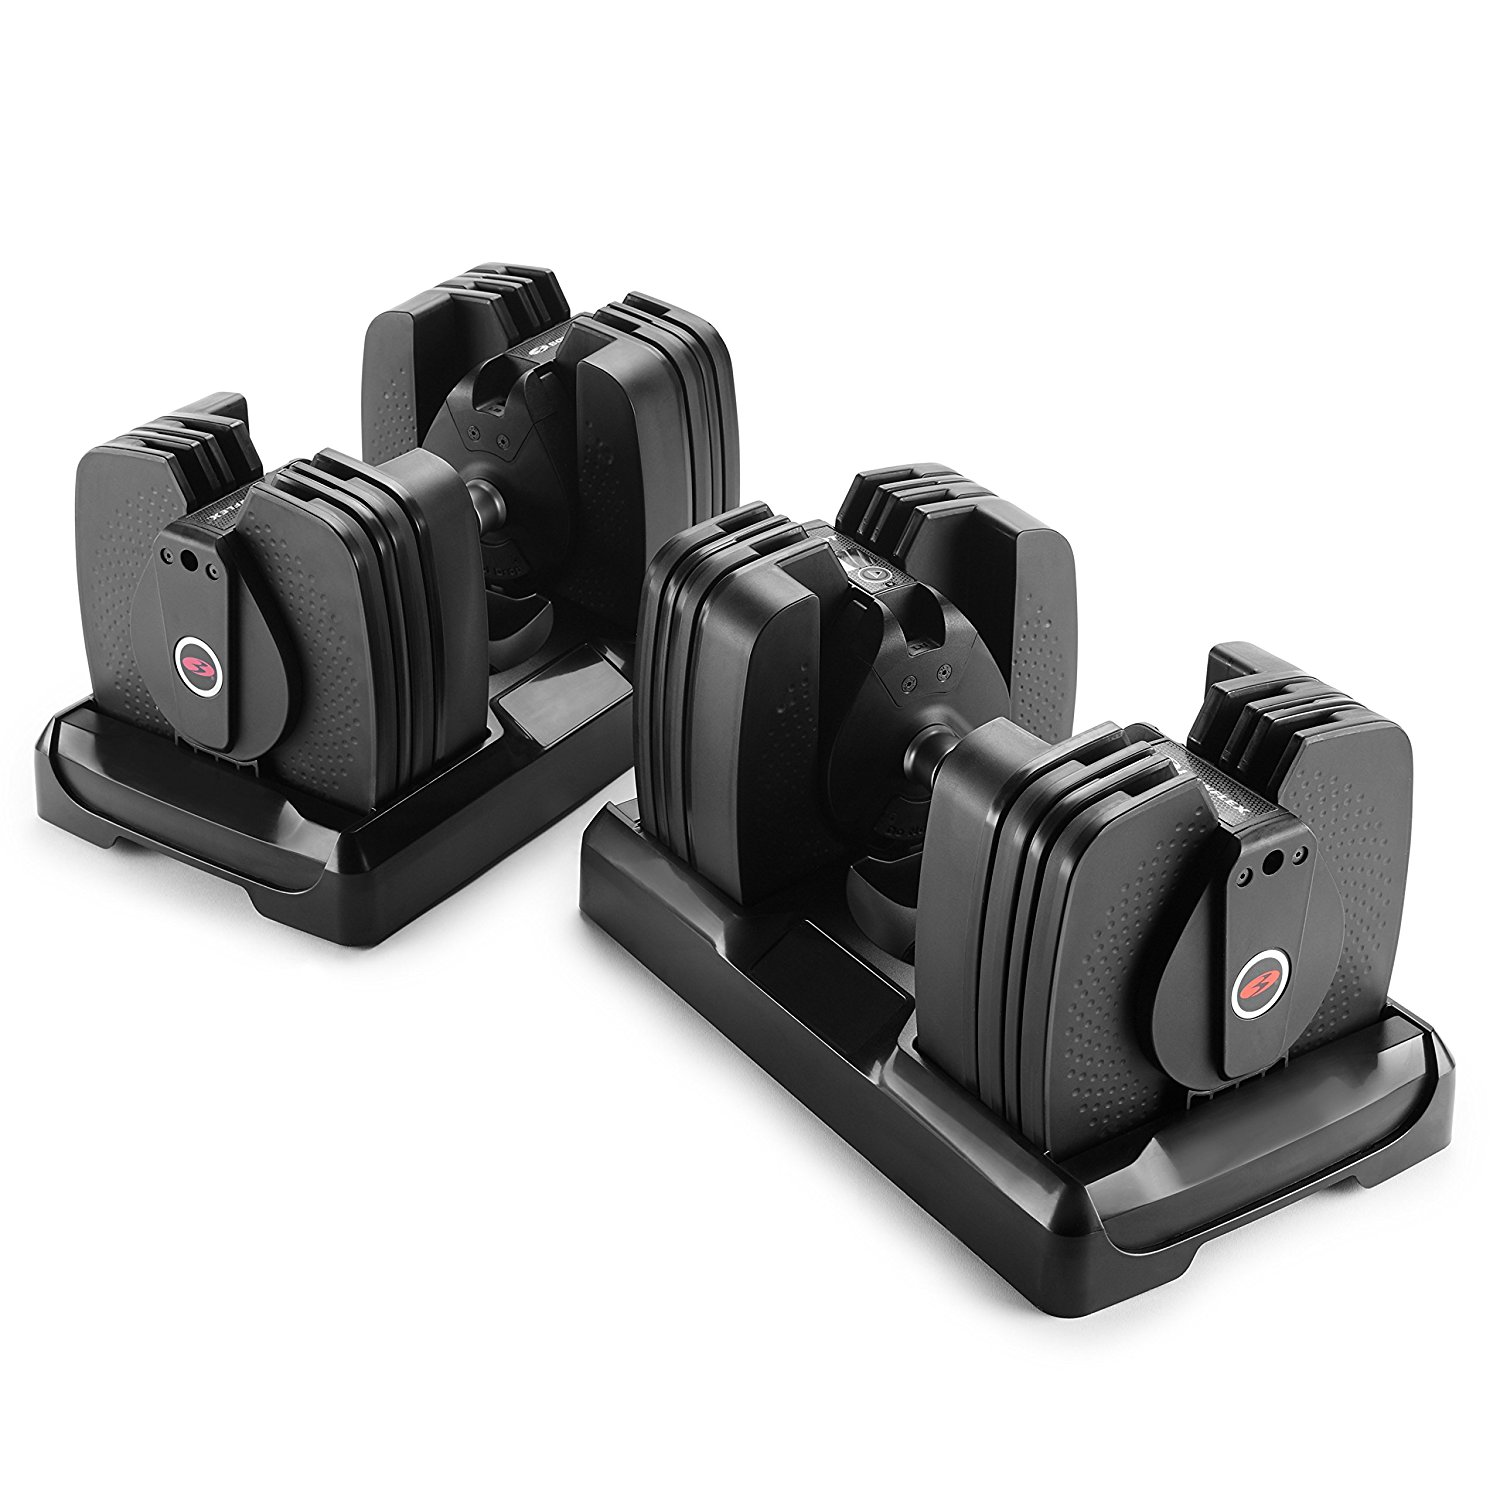 Bowflex SelectTech Adjustable Dumbbells VS Regular Dumbbells